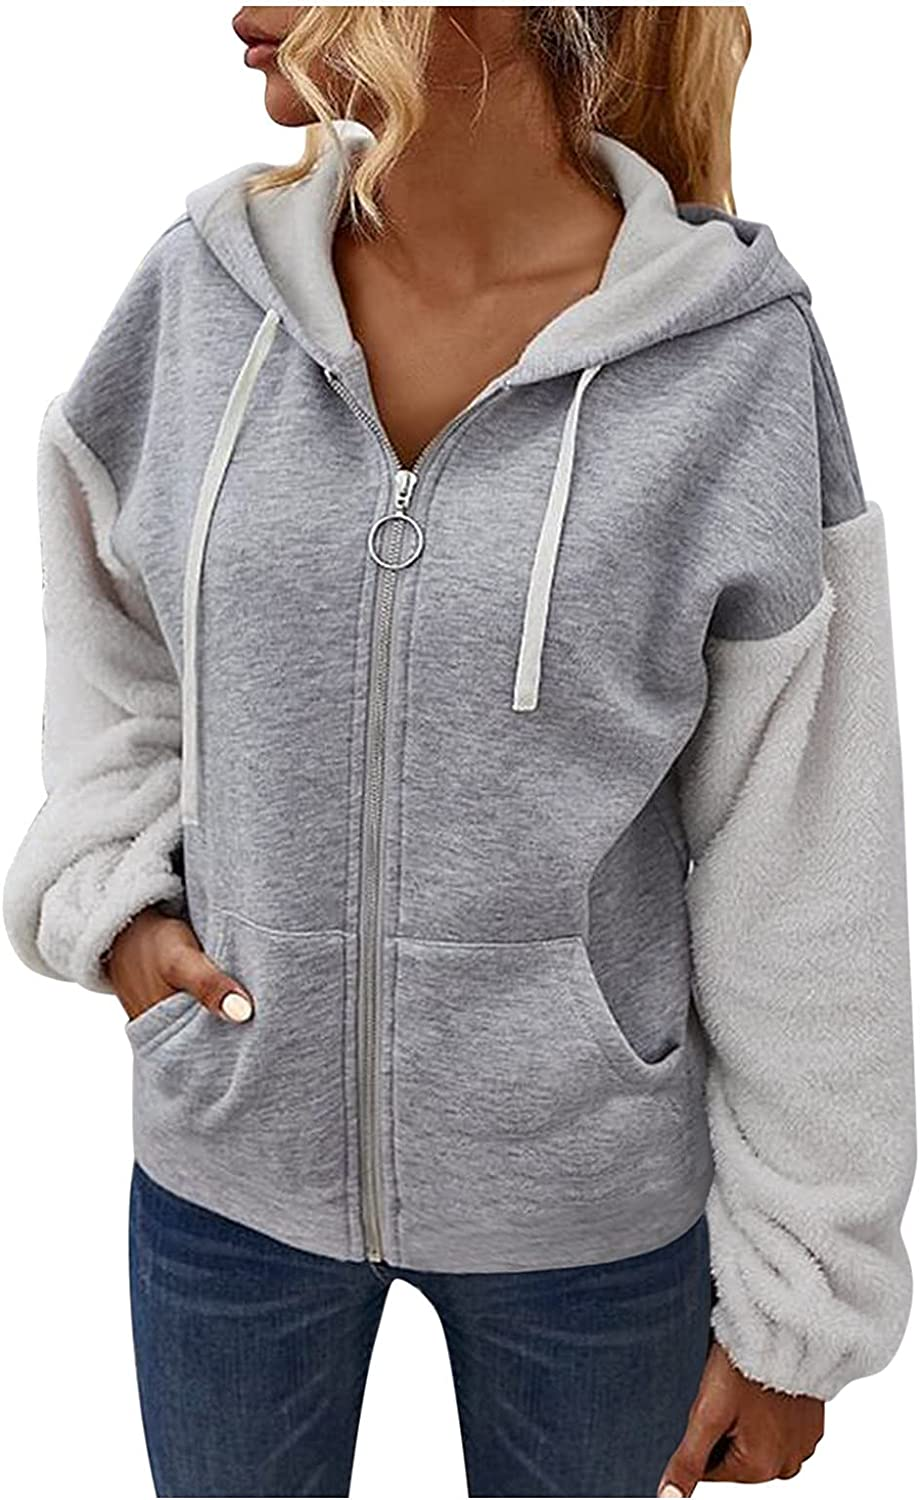 Sweat Jackets for Women Contrast Patchwork Hooded Long Sleeve Casual Coat